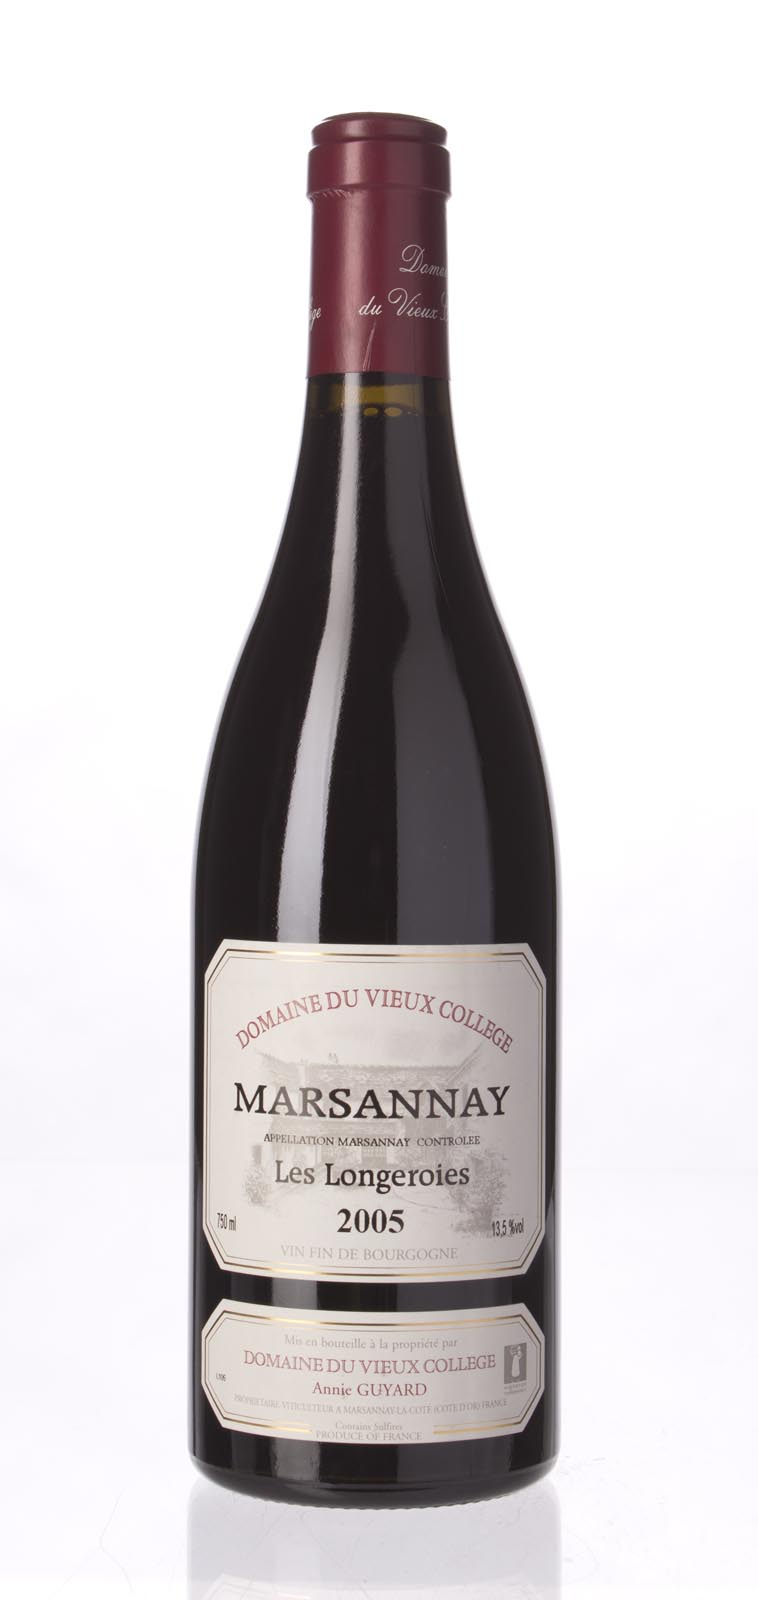 Domaine du Vieux College Marsannay Les Longeroies 2005, 750mL (CT87.7) from The BPW - Merchants of rare and fine wines.